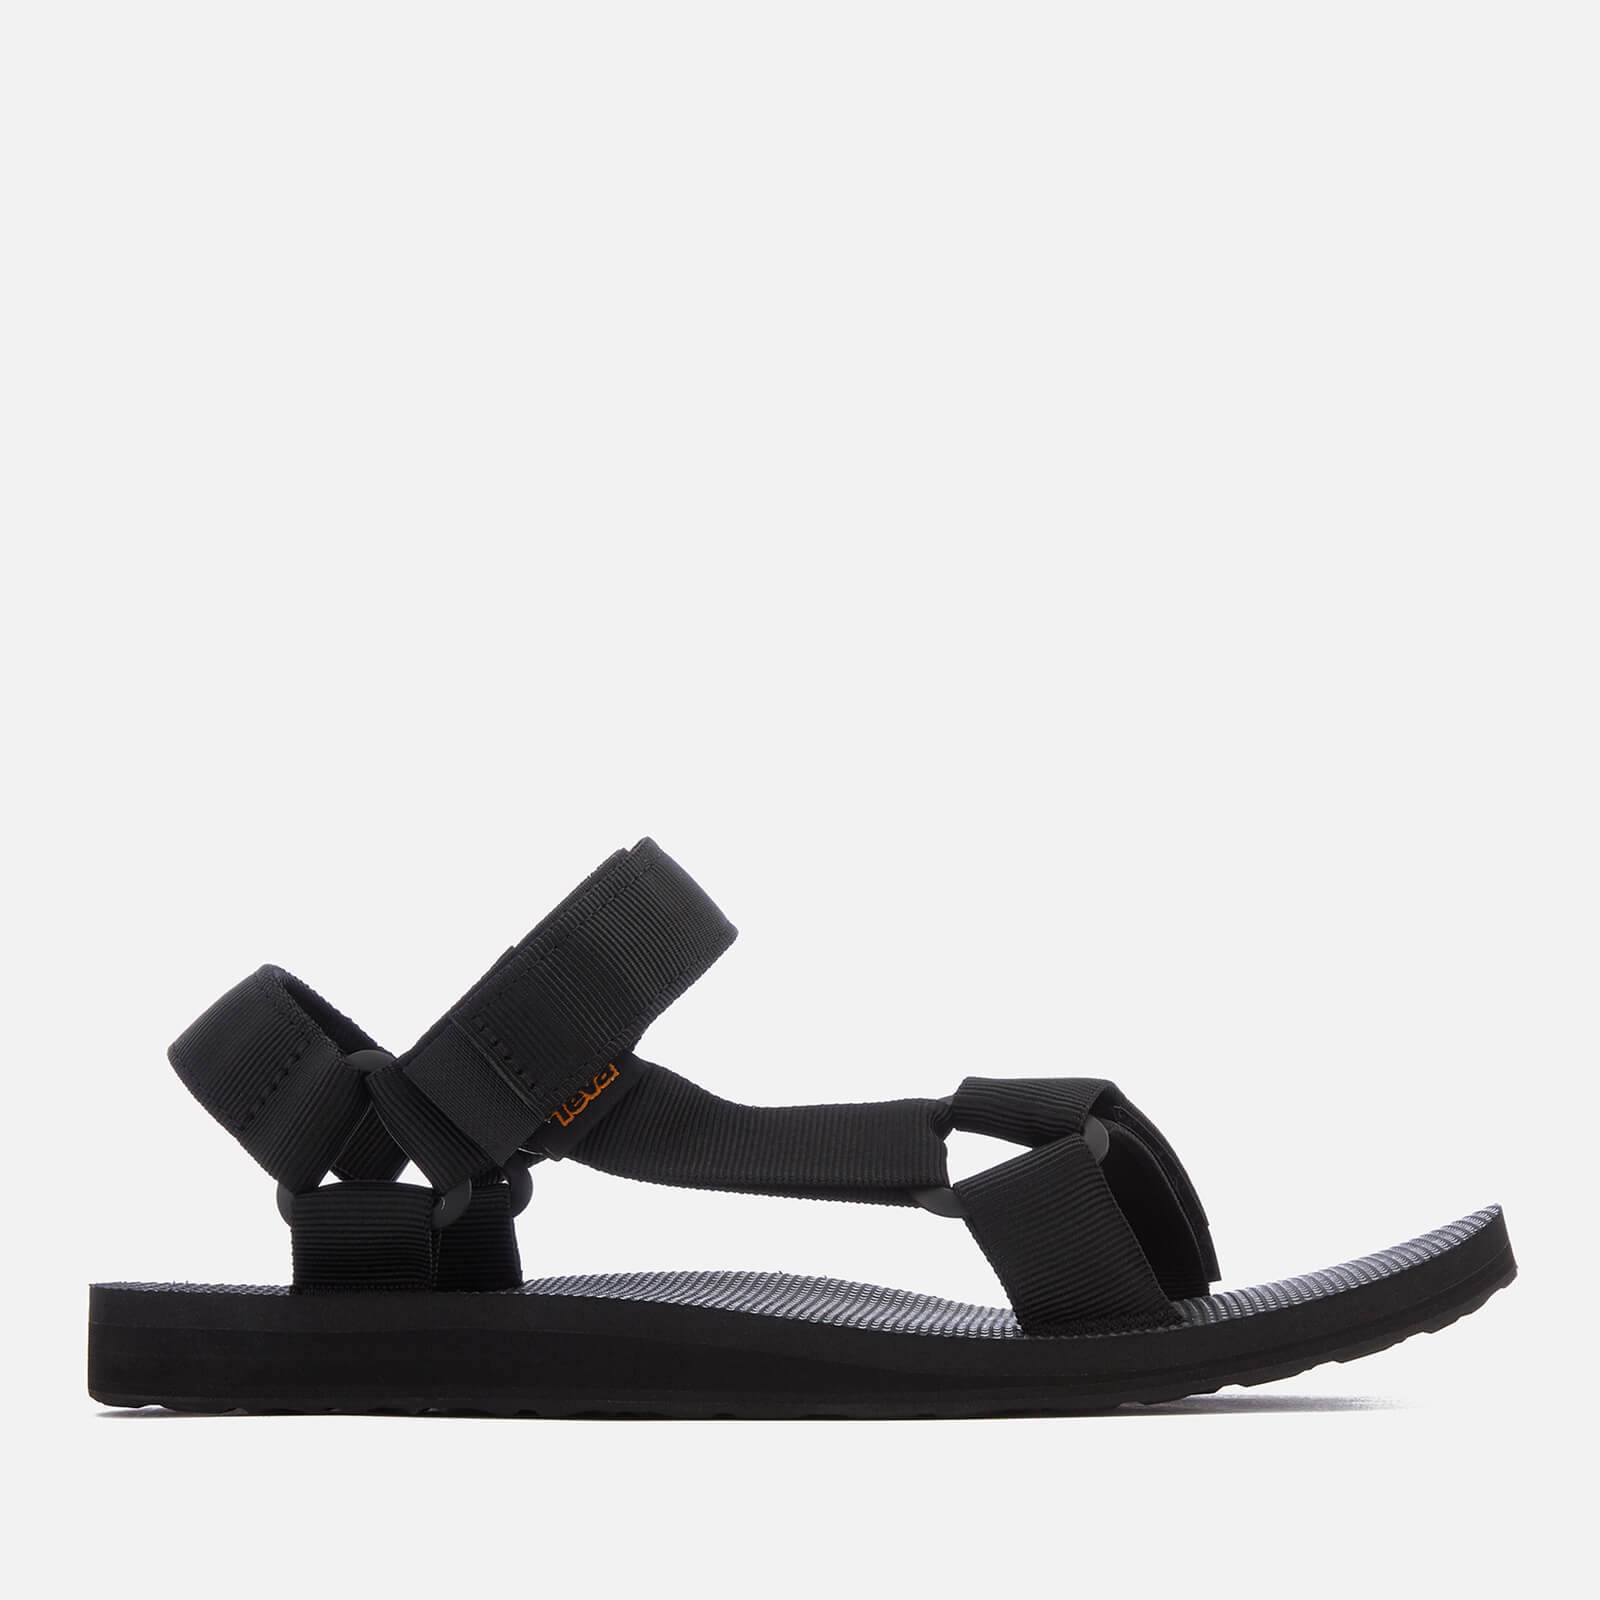 Teva Men's Original Universal Urban Sport Sandals - Black - UK 10